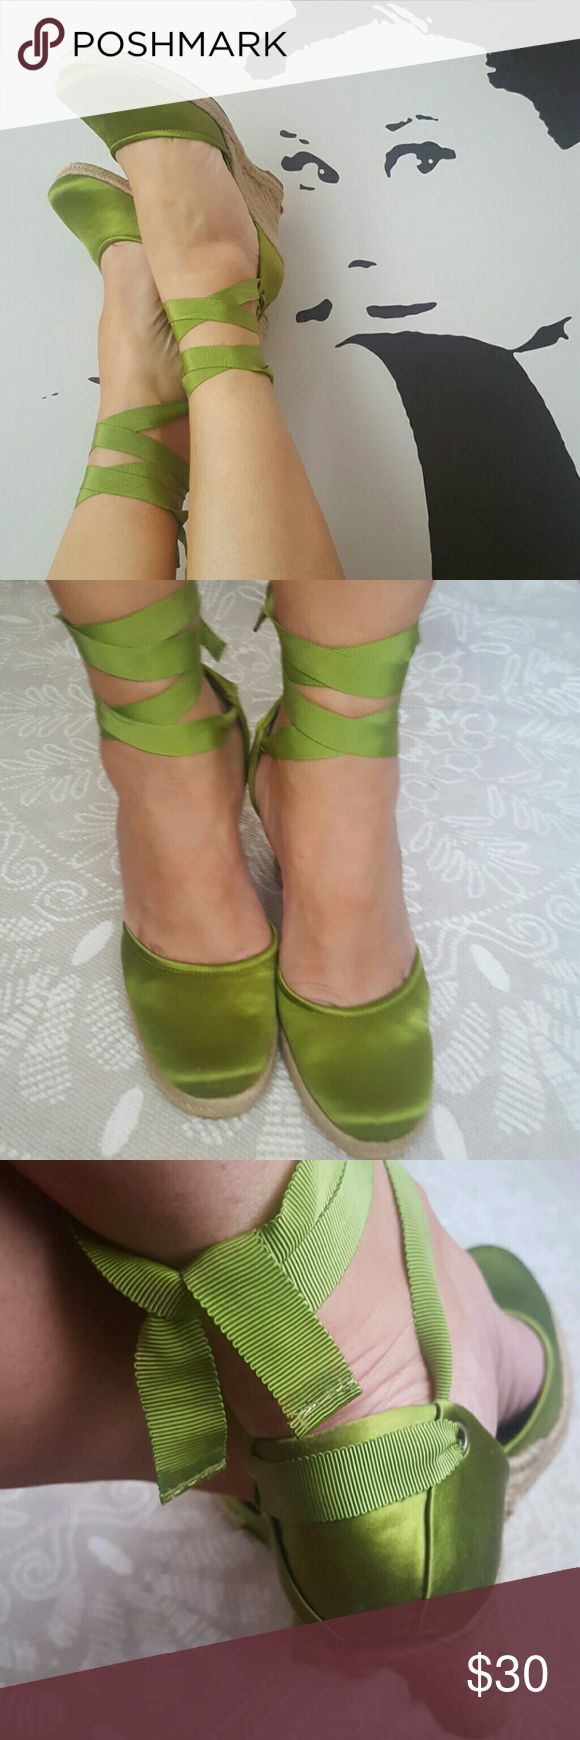 "🐸Wedge Sandals Beautiful lime green espadrilles . Satin fabric worn  once.4"" heels. Nine West Shoes Espadrilles"